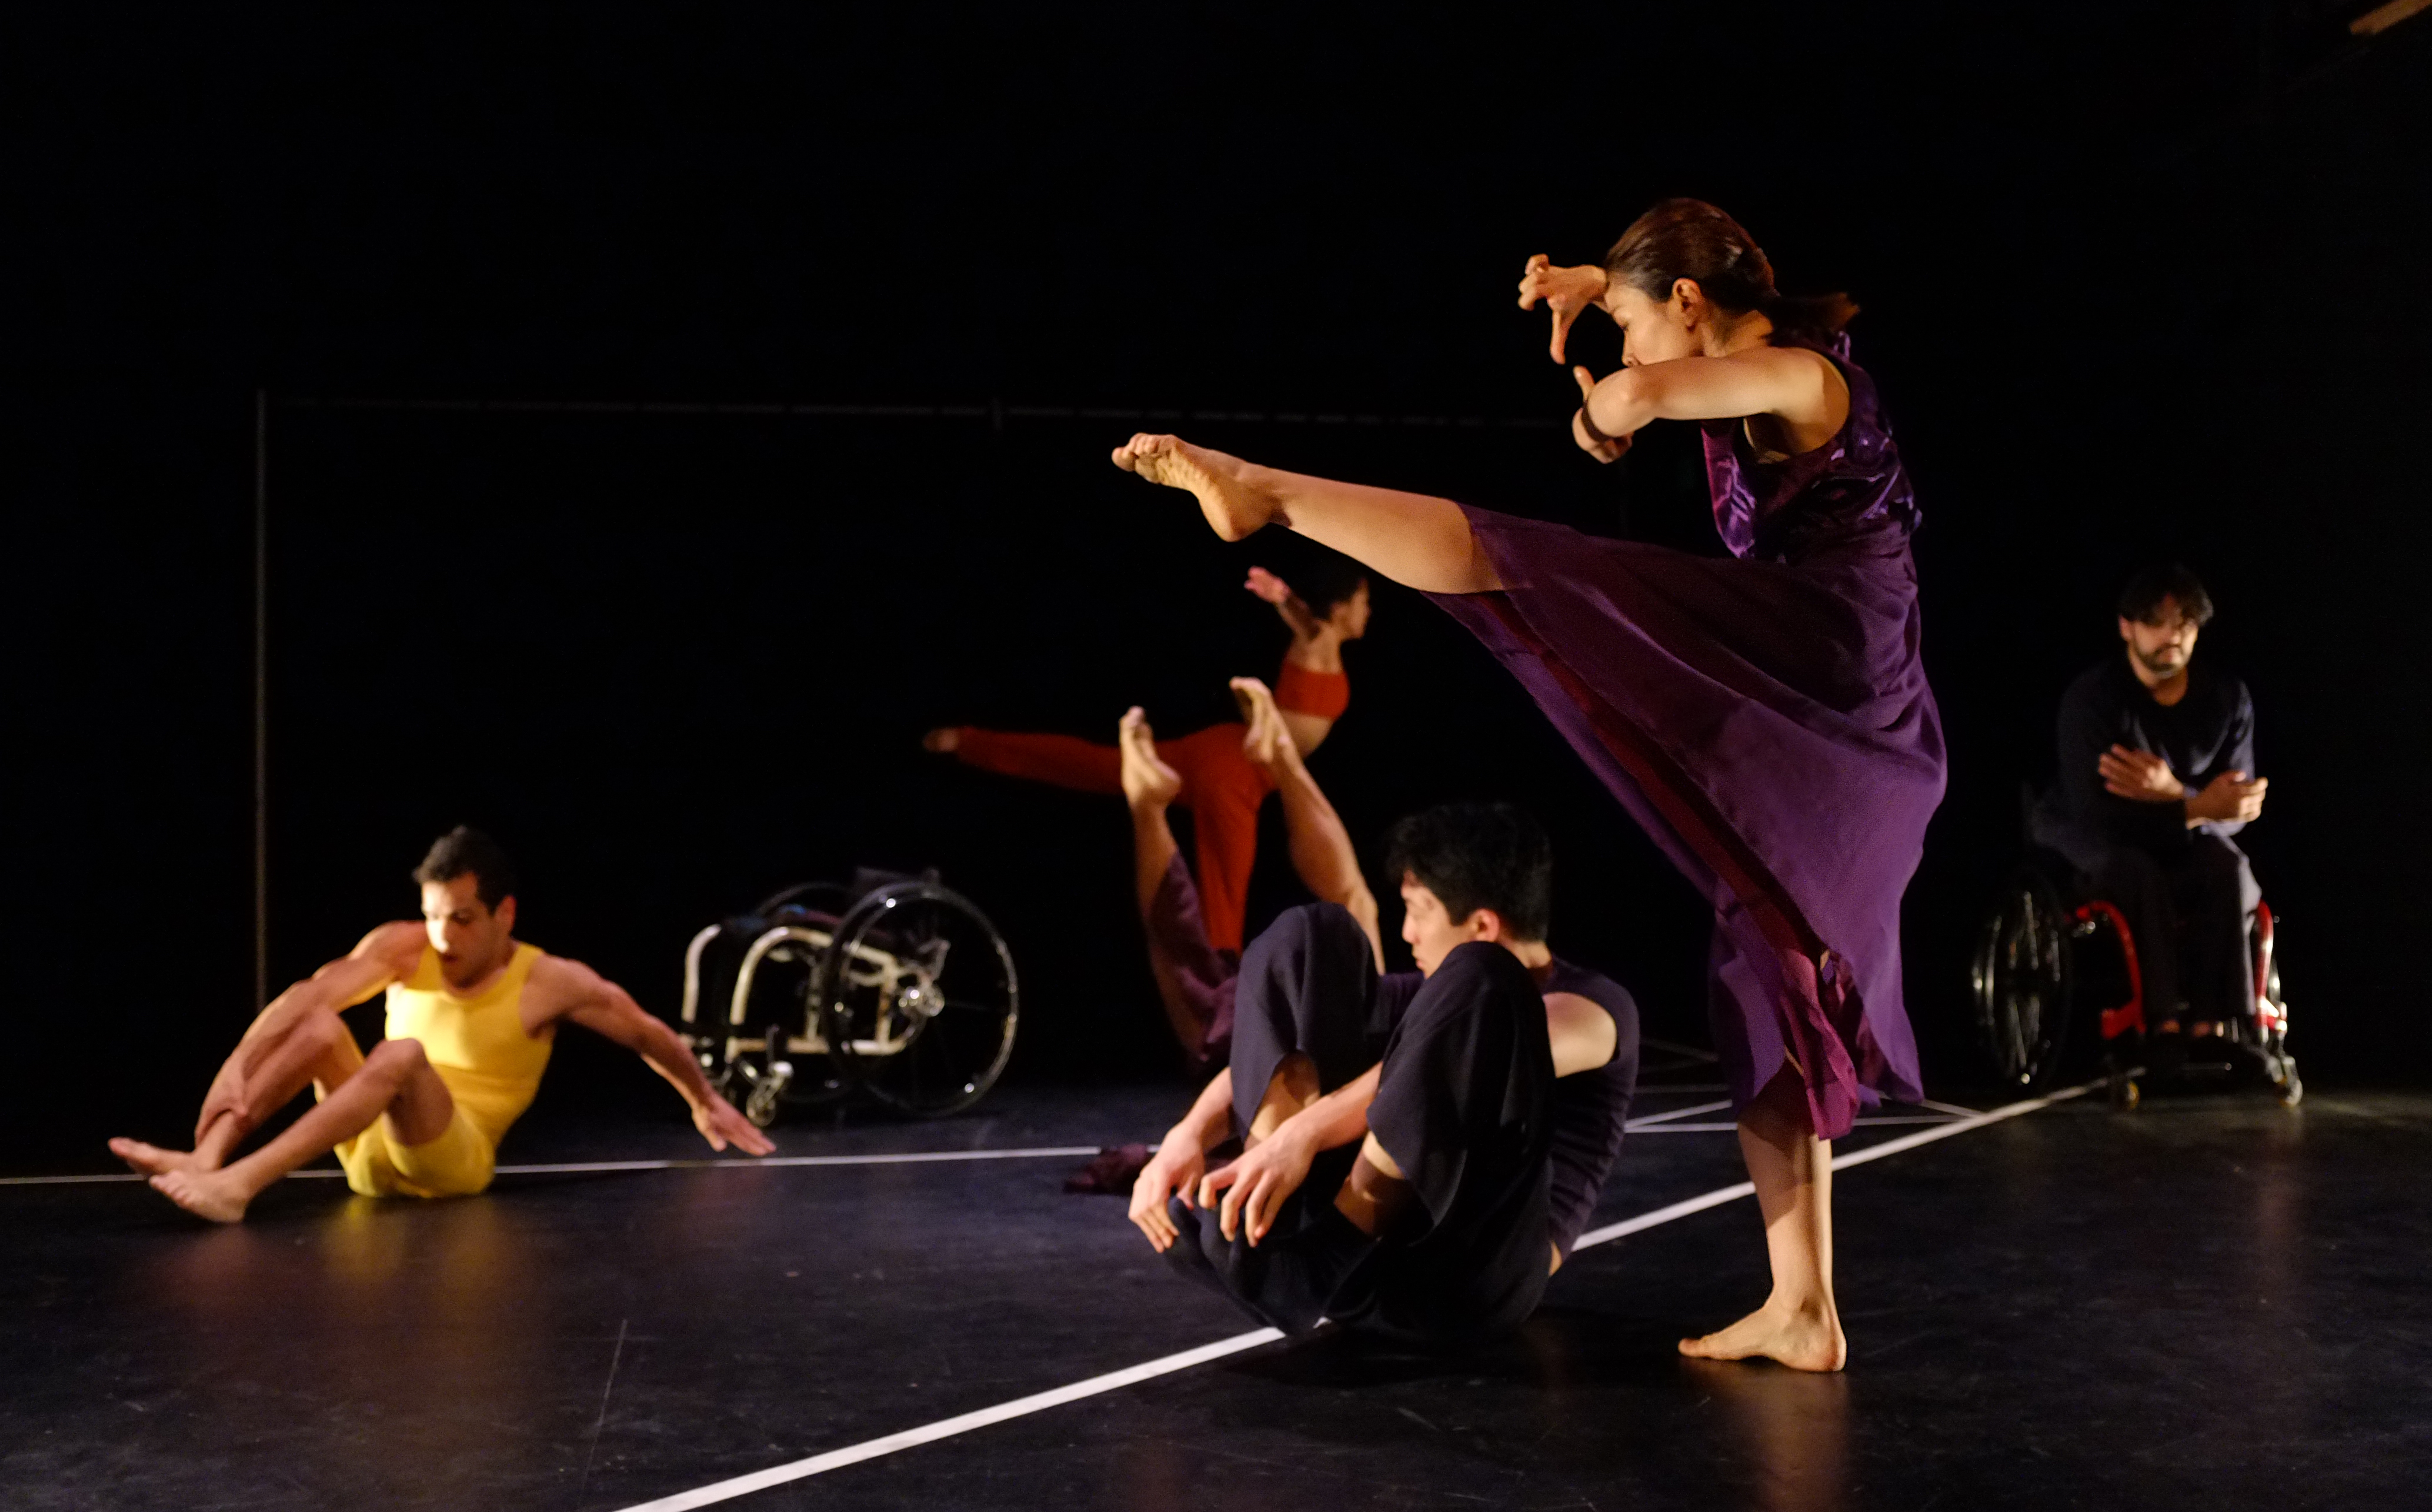 Five dancers are visible in a starkly side-lit dark stage. Each wears a solid color: gold, red, blue, or purple. They range from floor, sitting, to standing heights, all in motion in dynamic shapes. One dancer is in his wheelchair; another chair sits empty at the back. The floor is divided into angular pieces with strips of thick white tape.